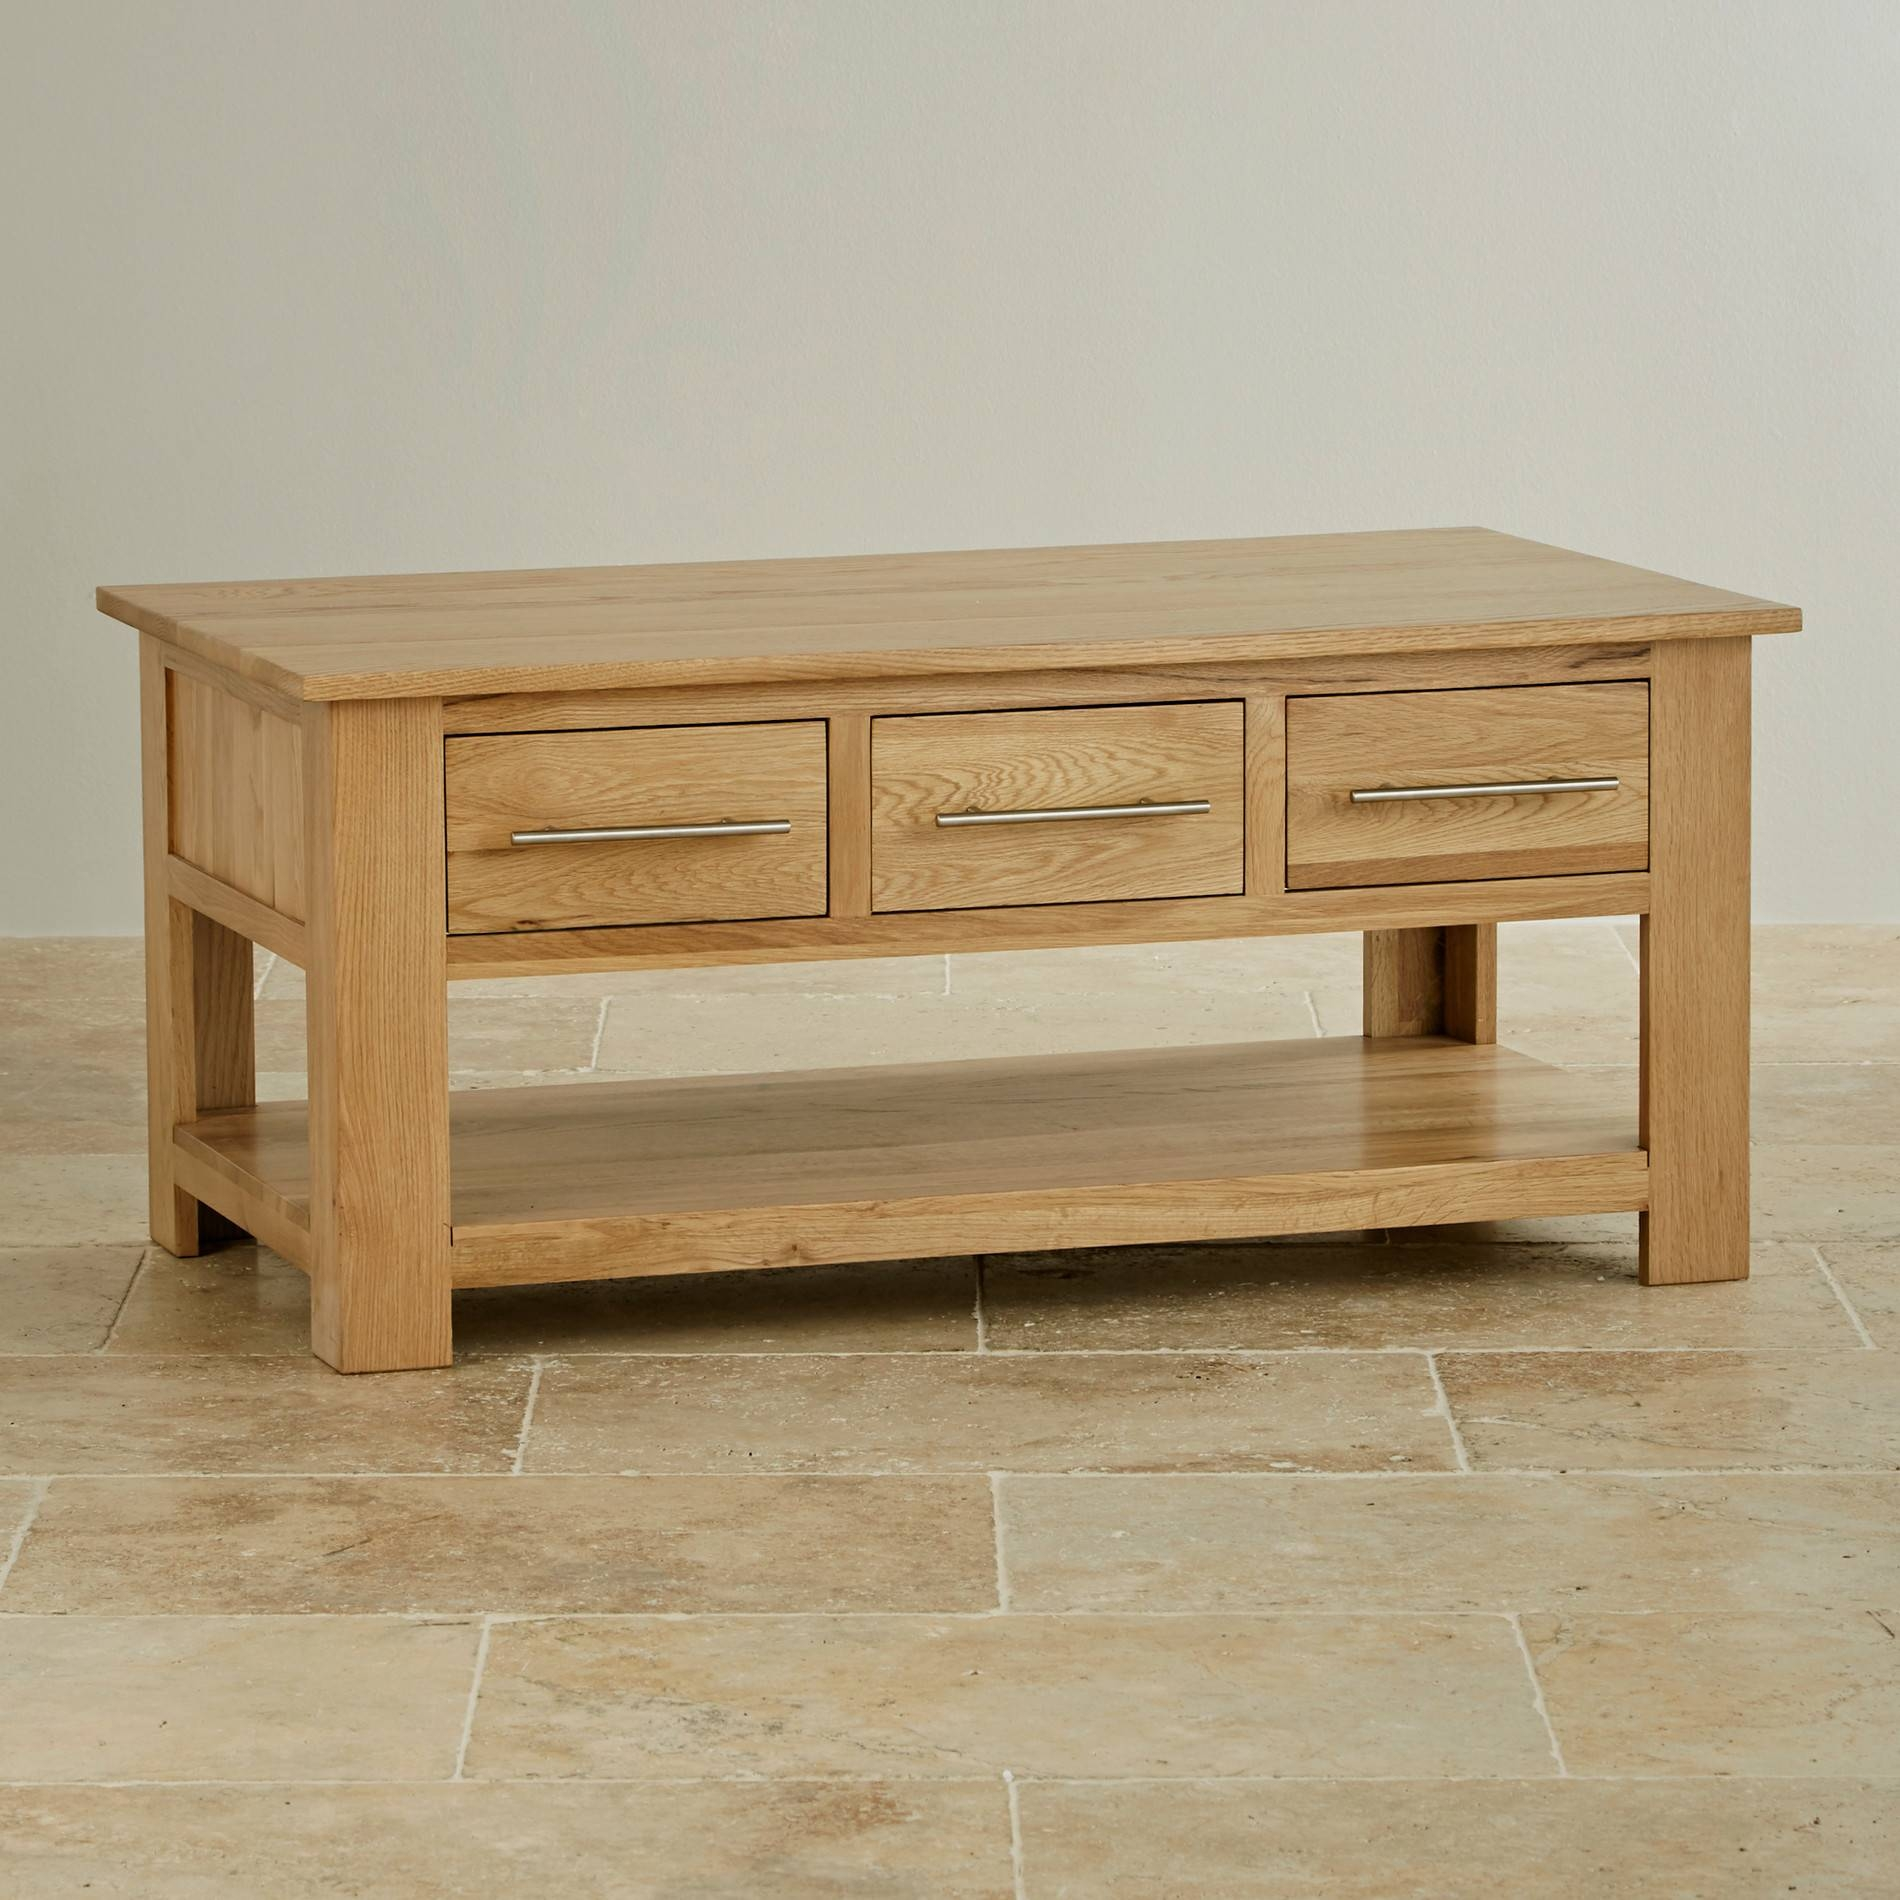 Rivermead 6 Drawer Coffee Table In Natural Solid Oak pertaining to Solid Oak Coffee Table With Storage (Image 13 of 15)